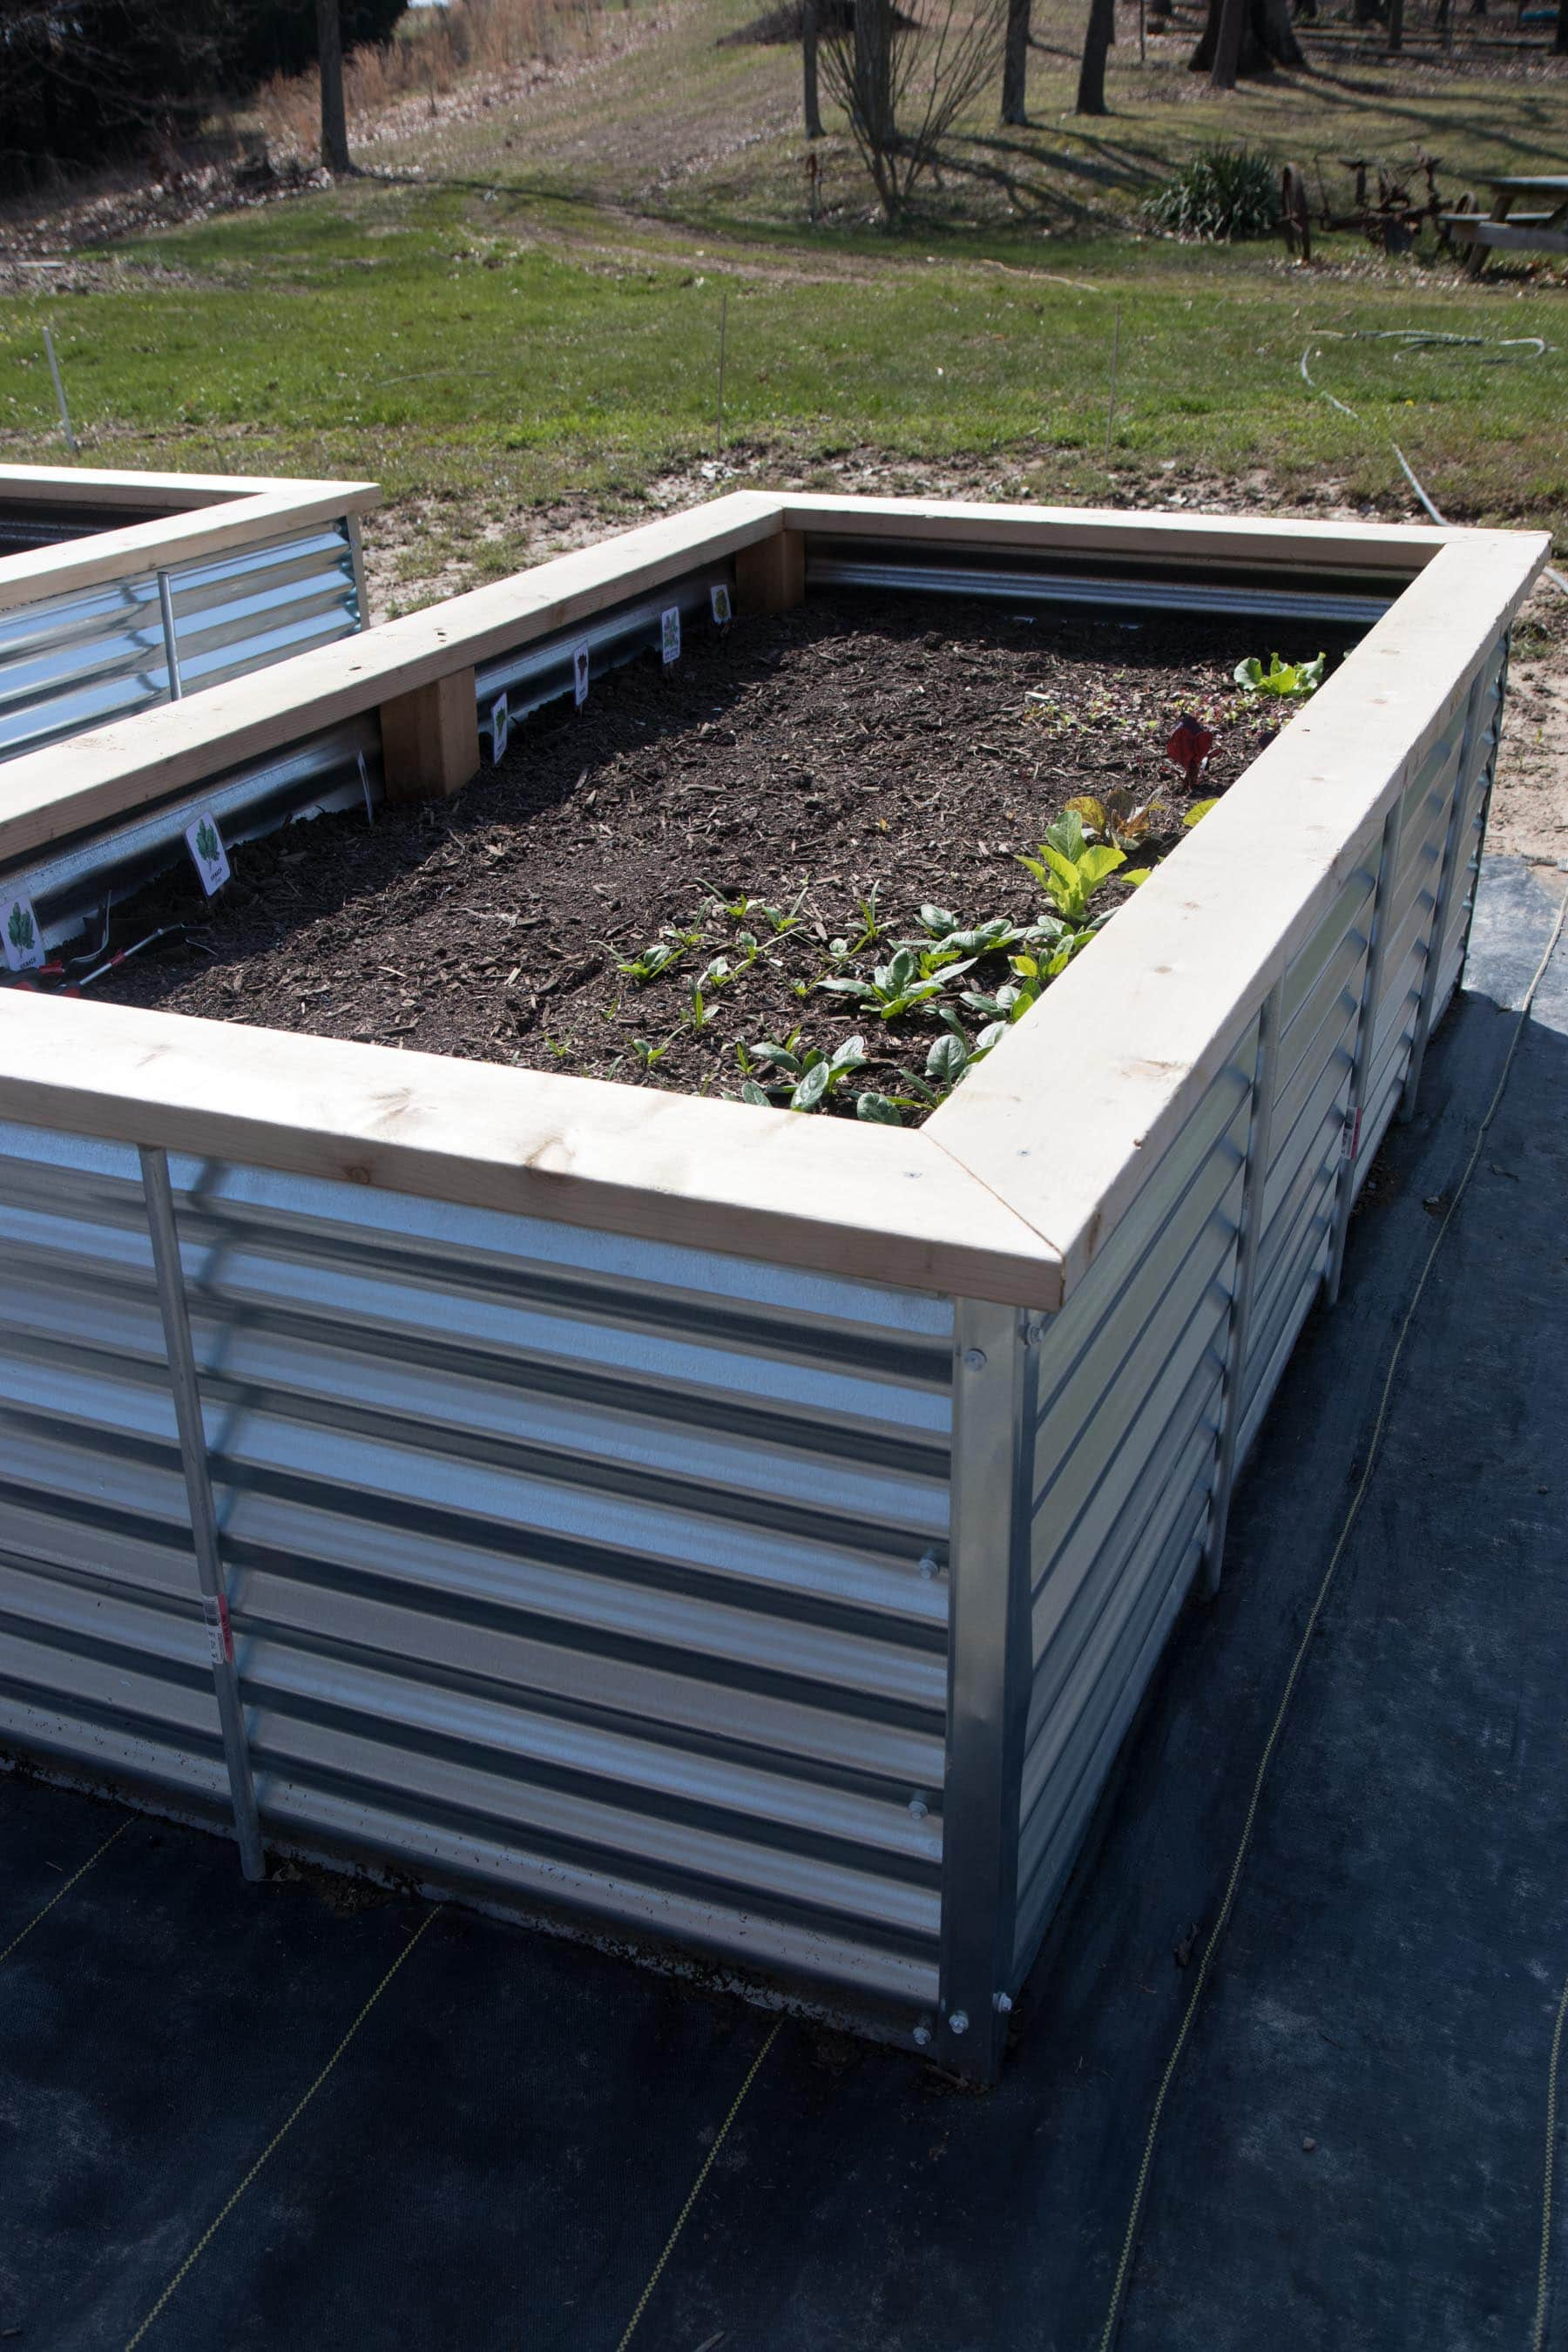 Side Angle Shot Of A Galvanized Steel Raised Bed Planted With Greens